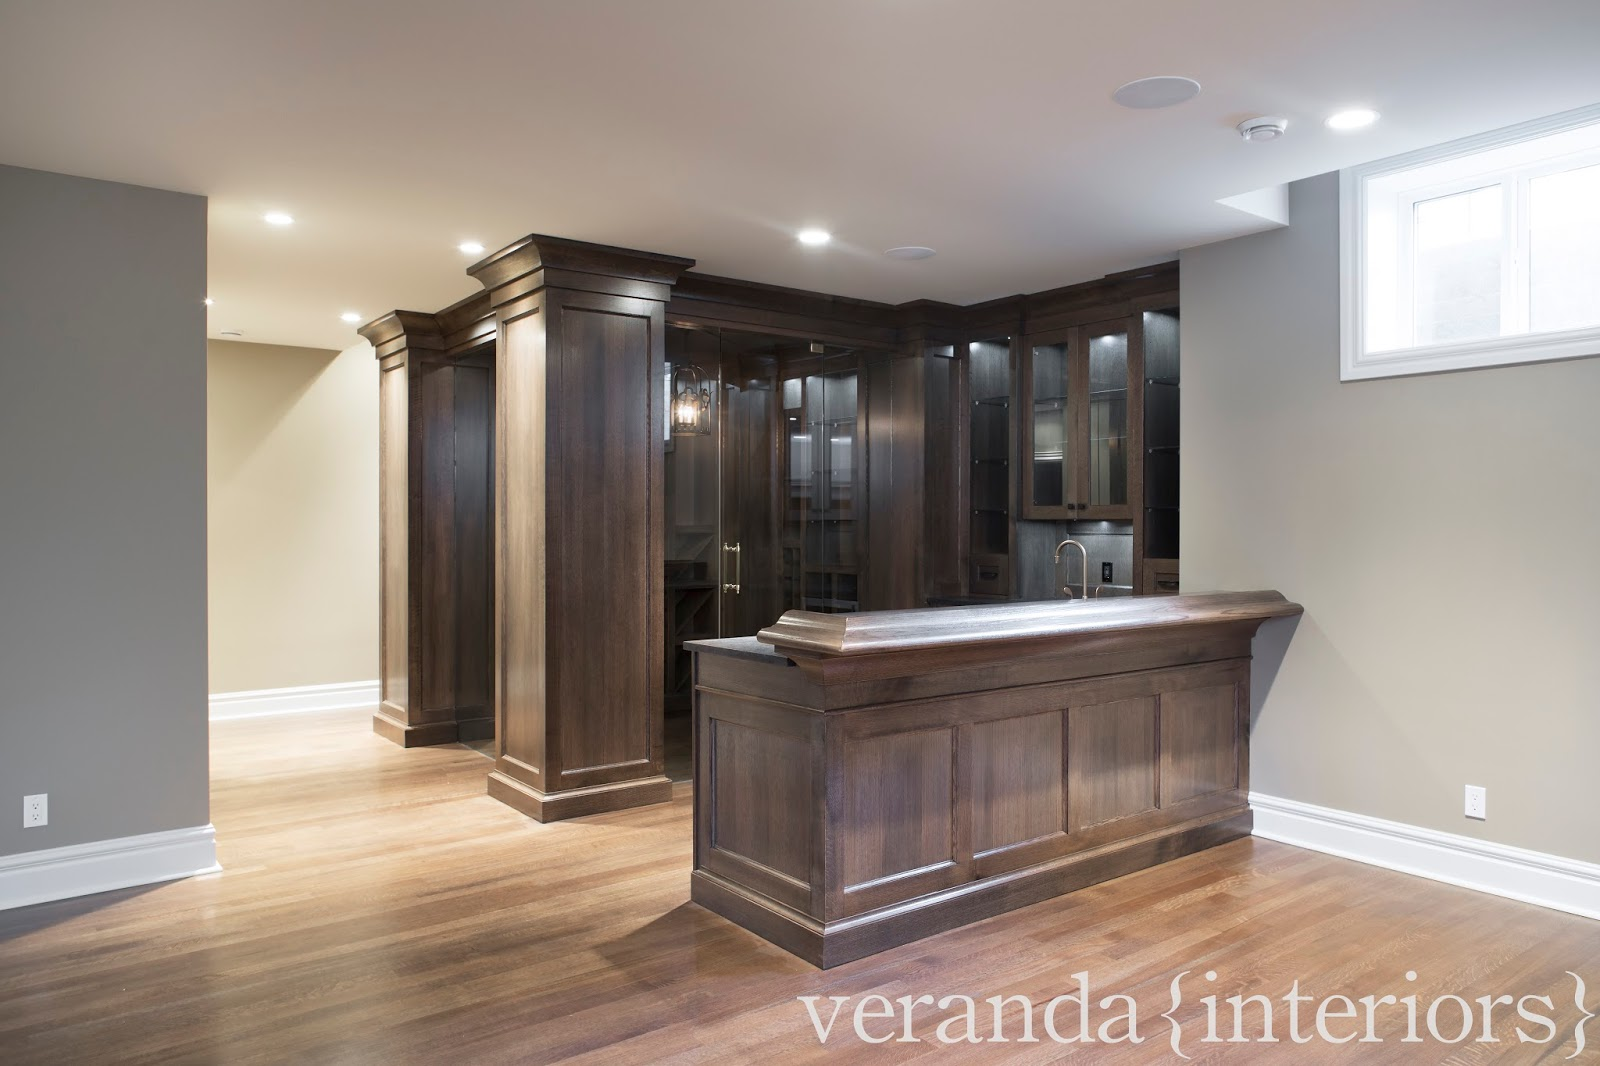 Delightful Veranda Interior | Interior Improvement Tips, News, And Product Reviews